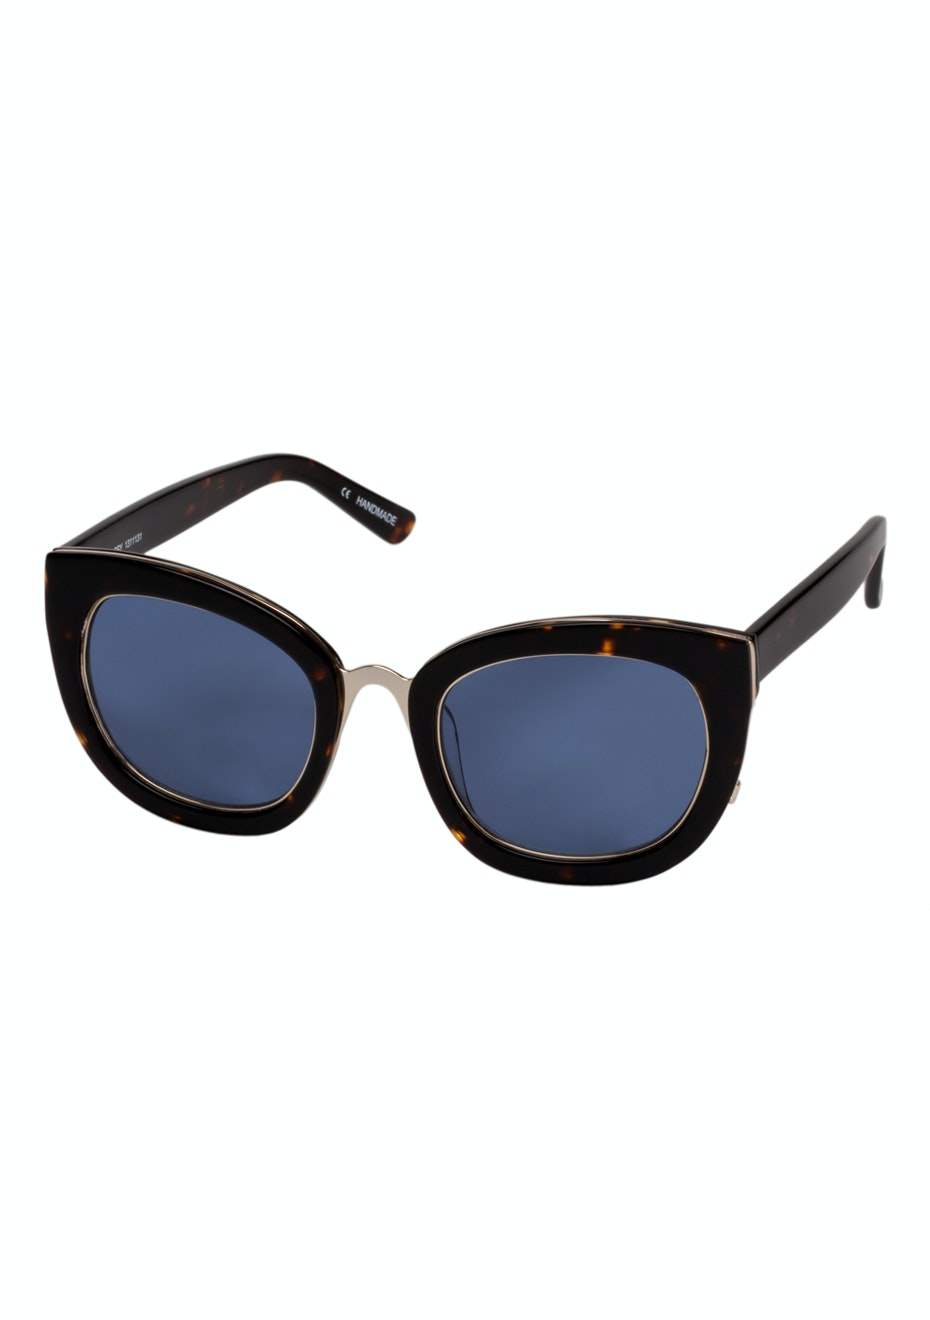 House Of Holland - Glassy 1311131 - Tort /  Gold